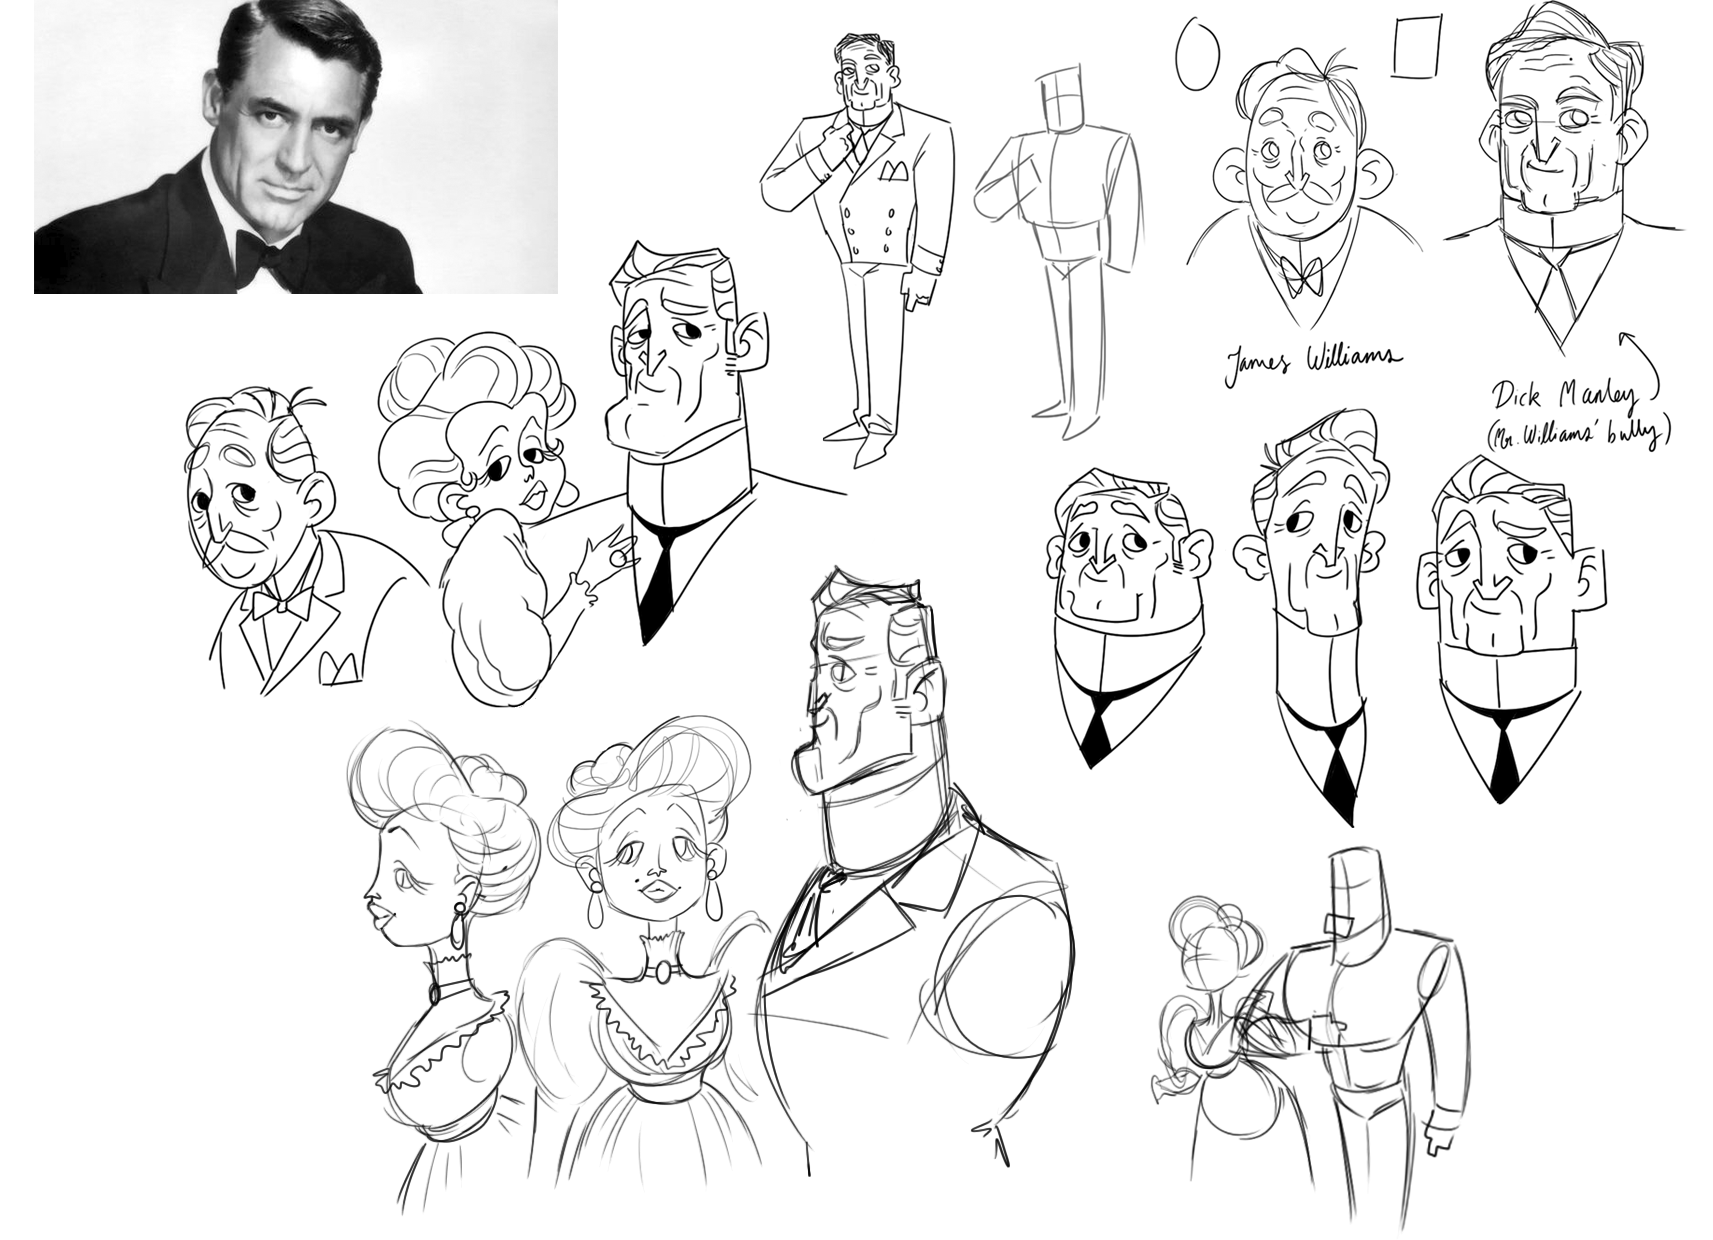 Dick Manley sketches